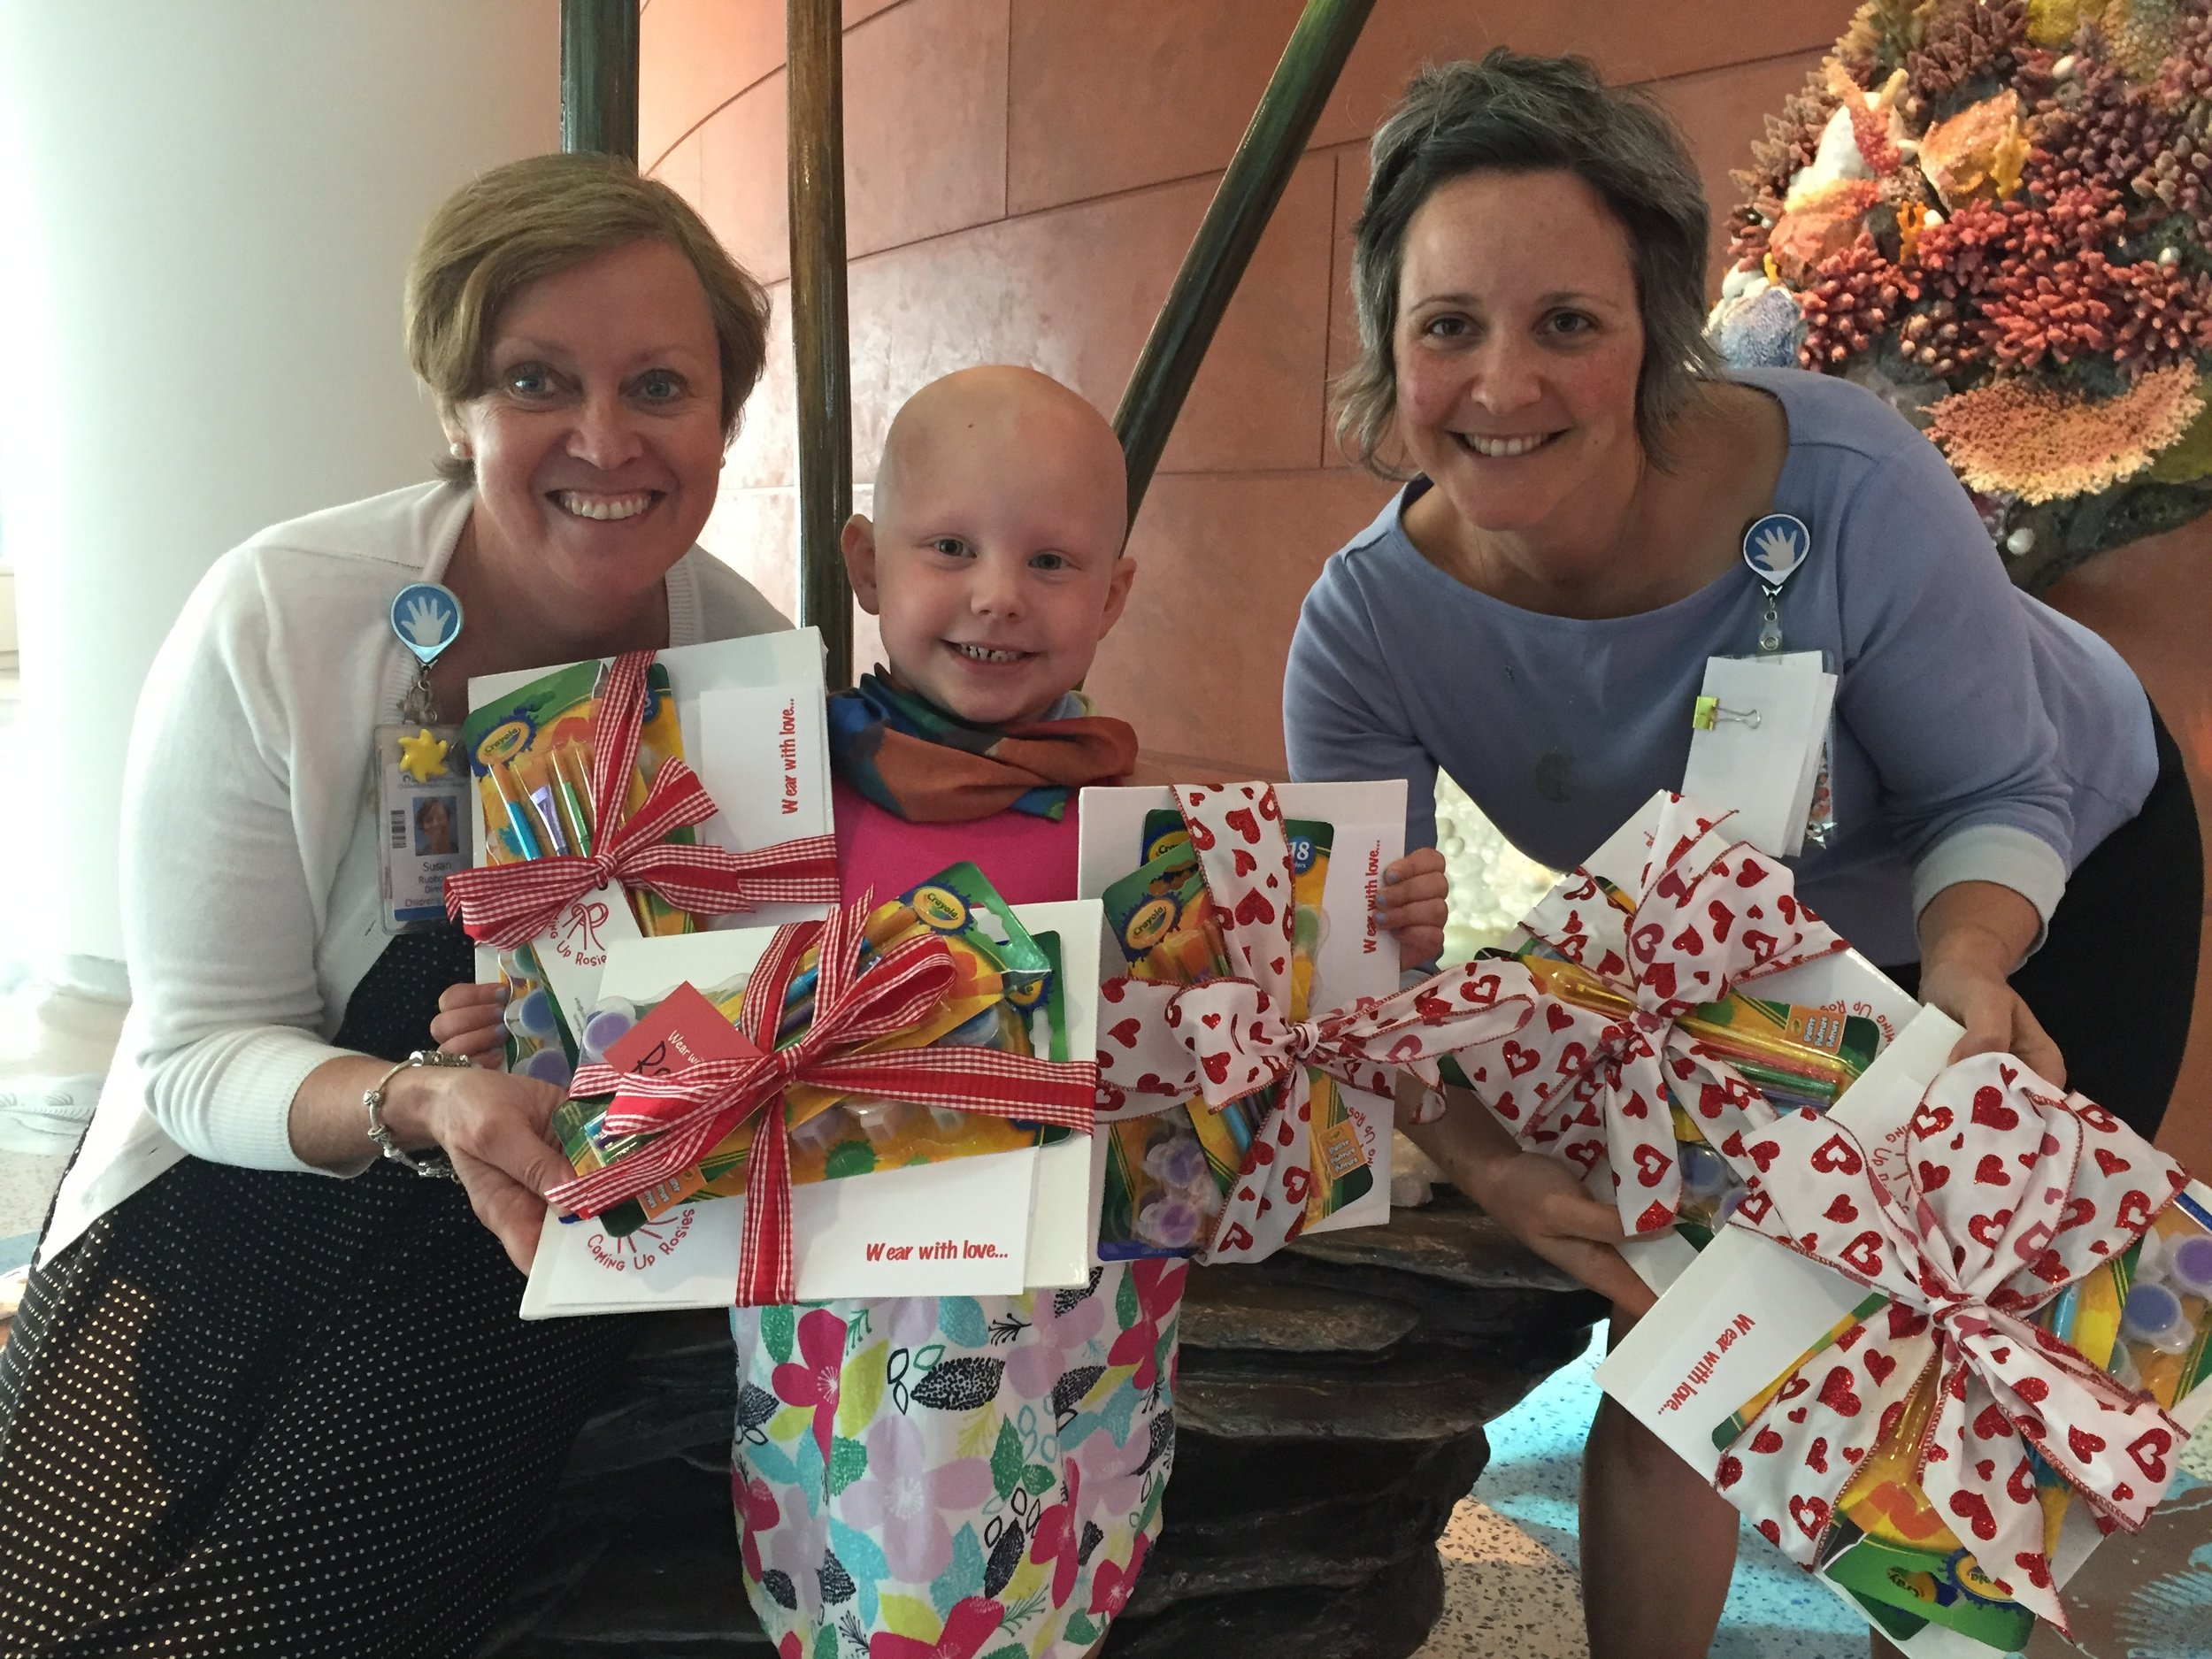 """Rosie donating """"Scarf Making Kits"""" to Susan Ruohonen (Director of Children's Services) and Willow Messier (Art Therapist). They are responsible for spreading the Coming Up Rosies love at Lurie Children's Hospital!"""